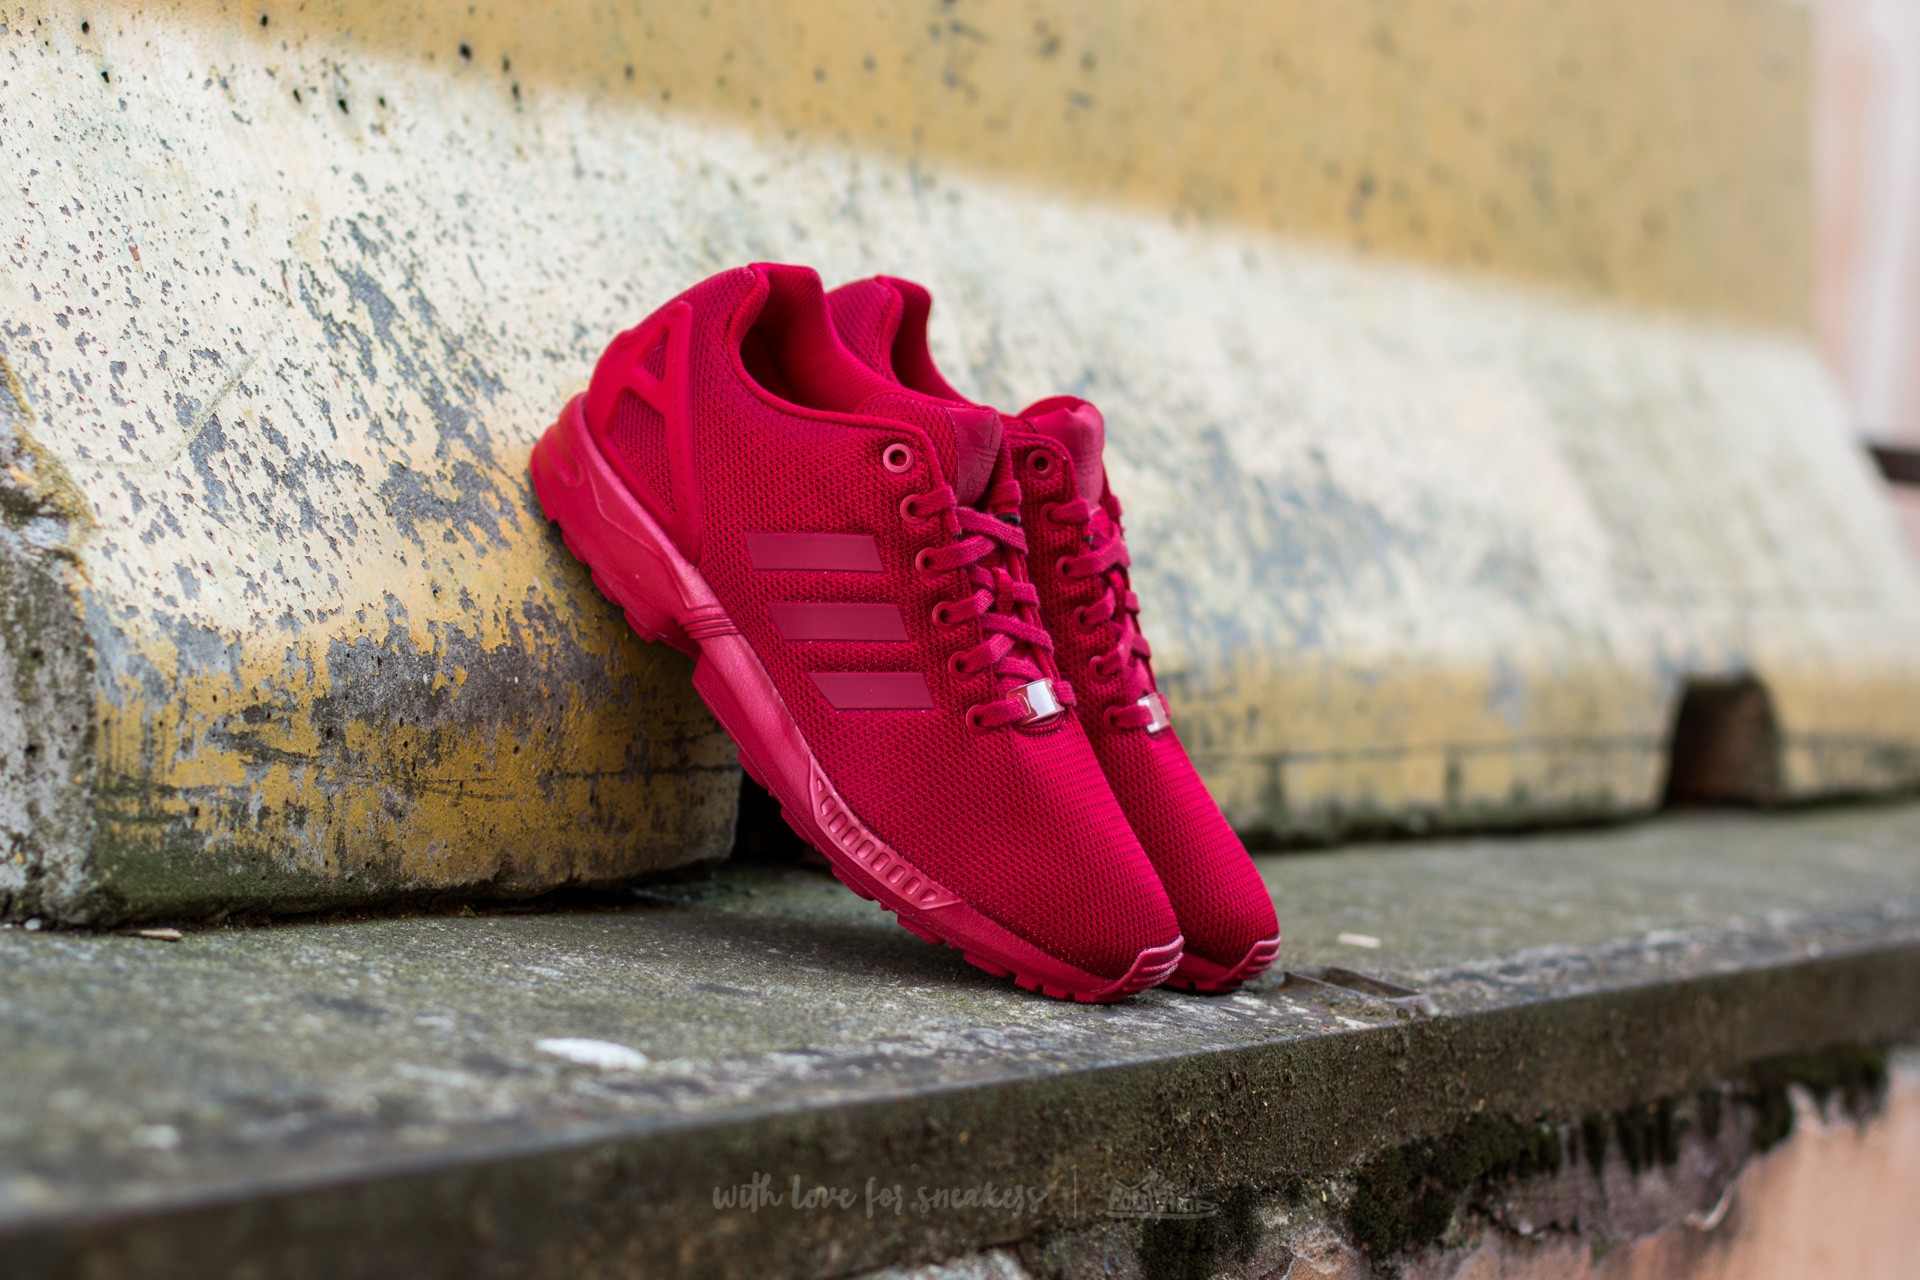 Collegiate Red Power Flux Zx Adidas Footshop Burgundy zIBqxwn4t